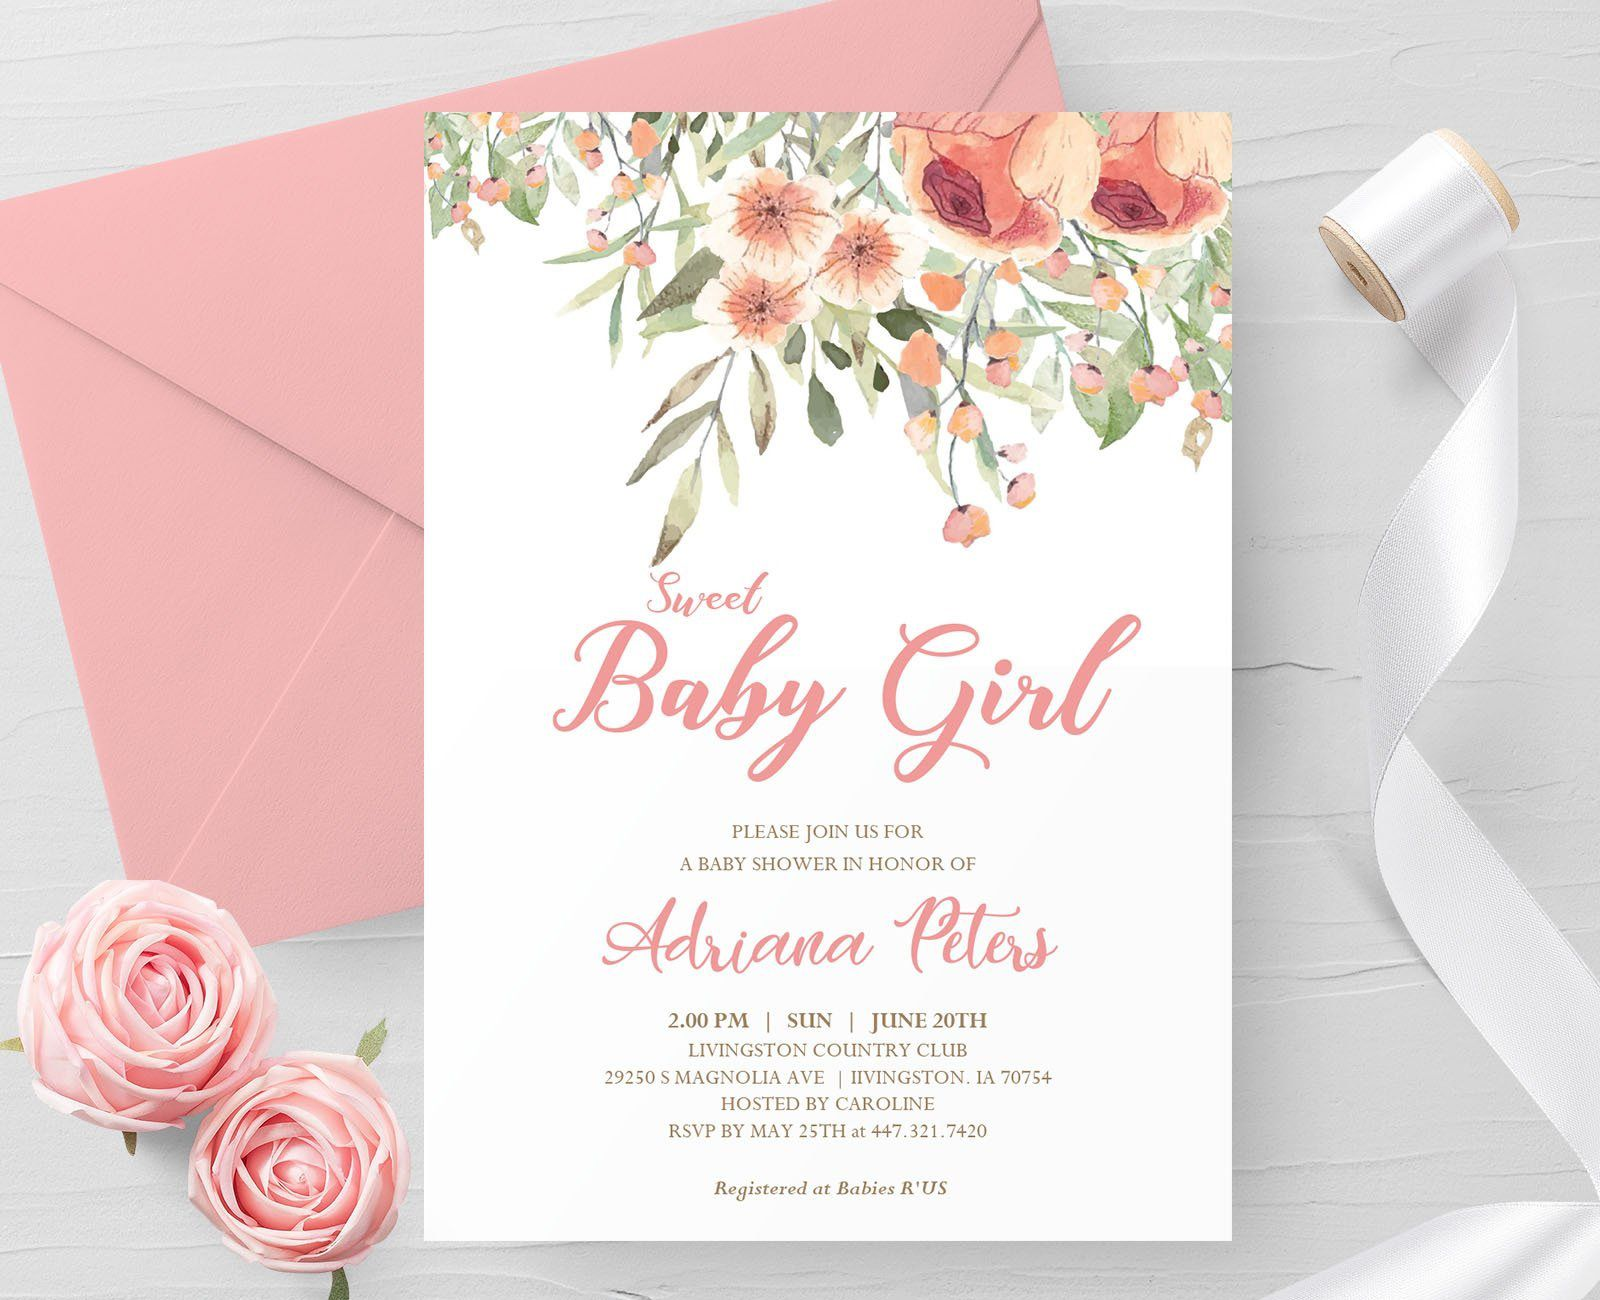 000 Magnificent Baby Shower Invite Template Word Highest Clarity  Invitation Wording Sample Free ExampleFull